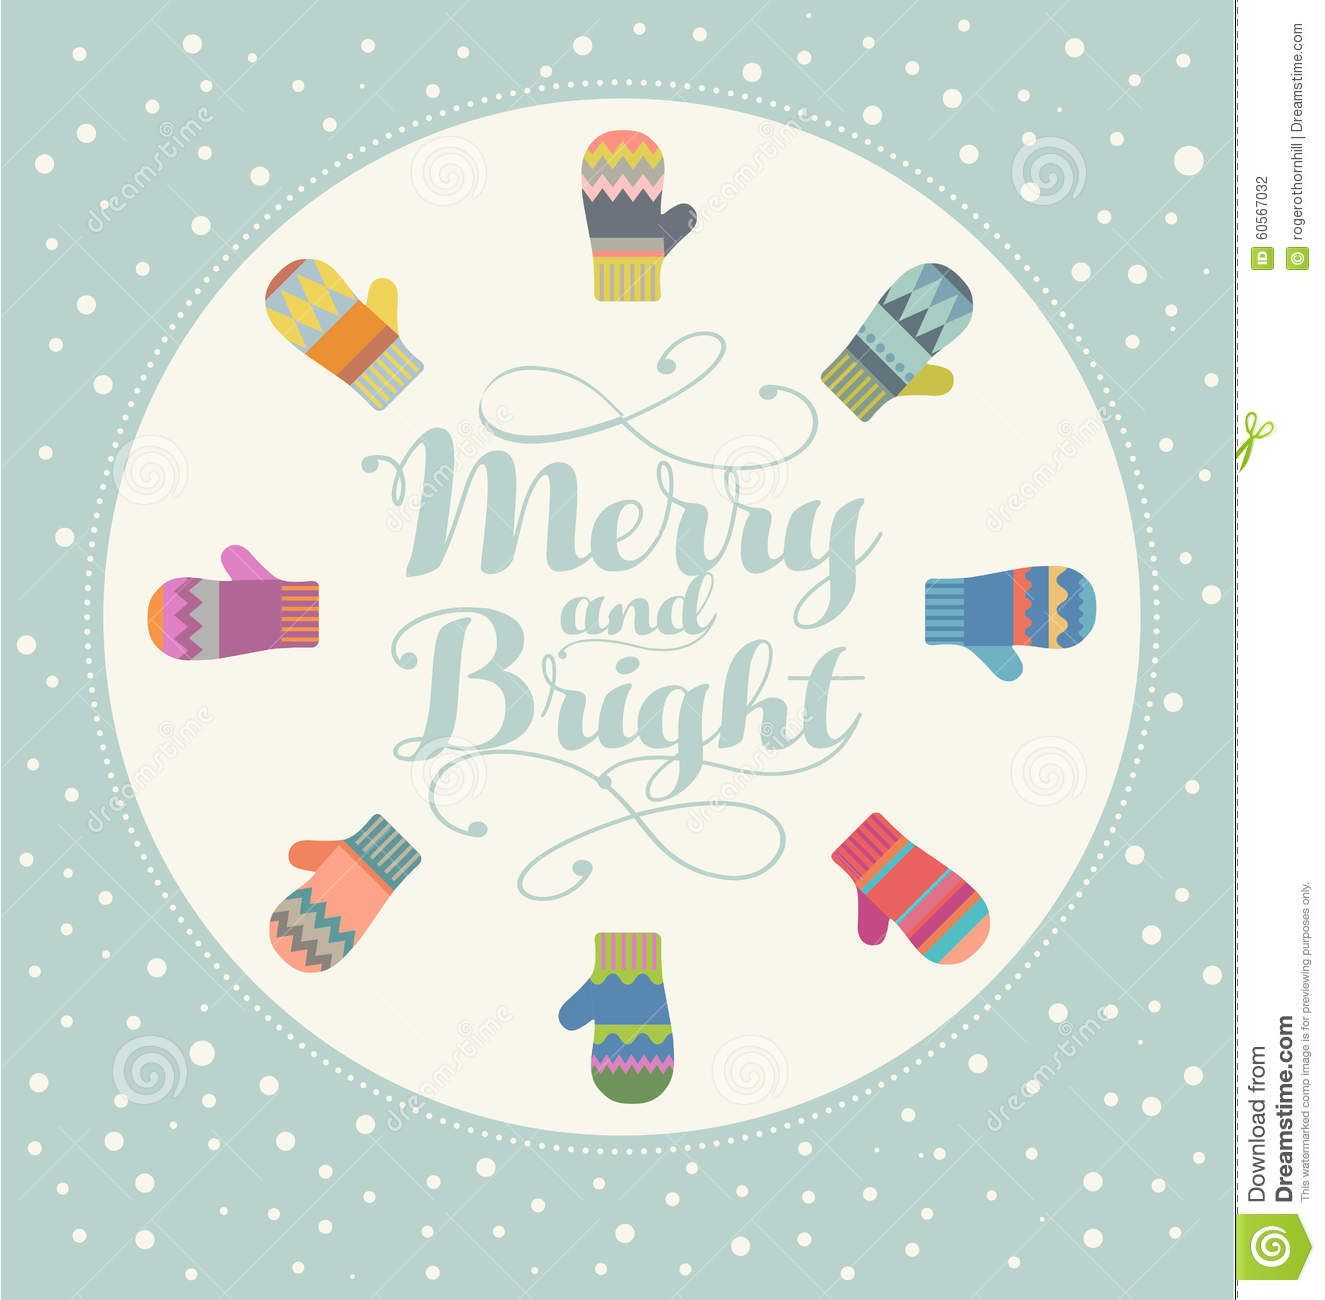 Holiday Card Design With Colorful Mittens Merry And Bright Stock ...